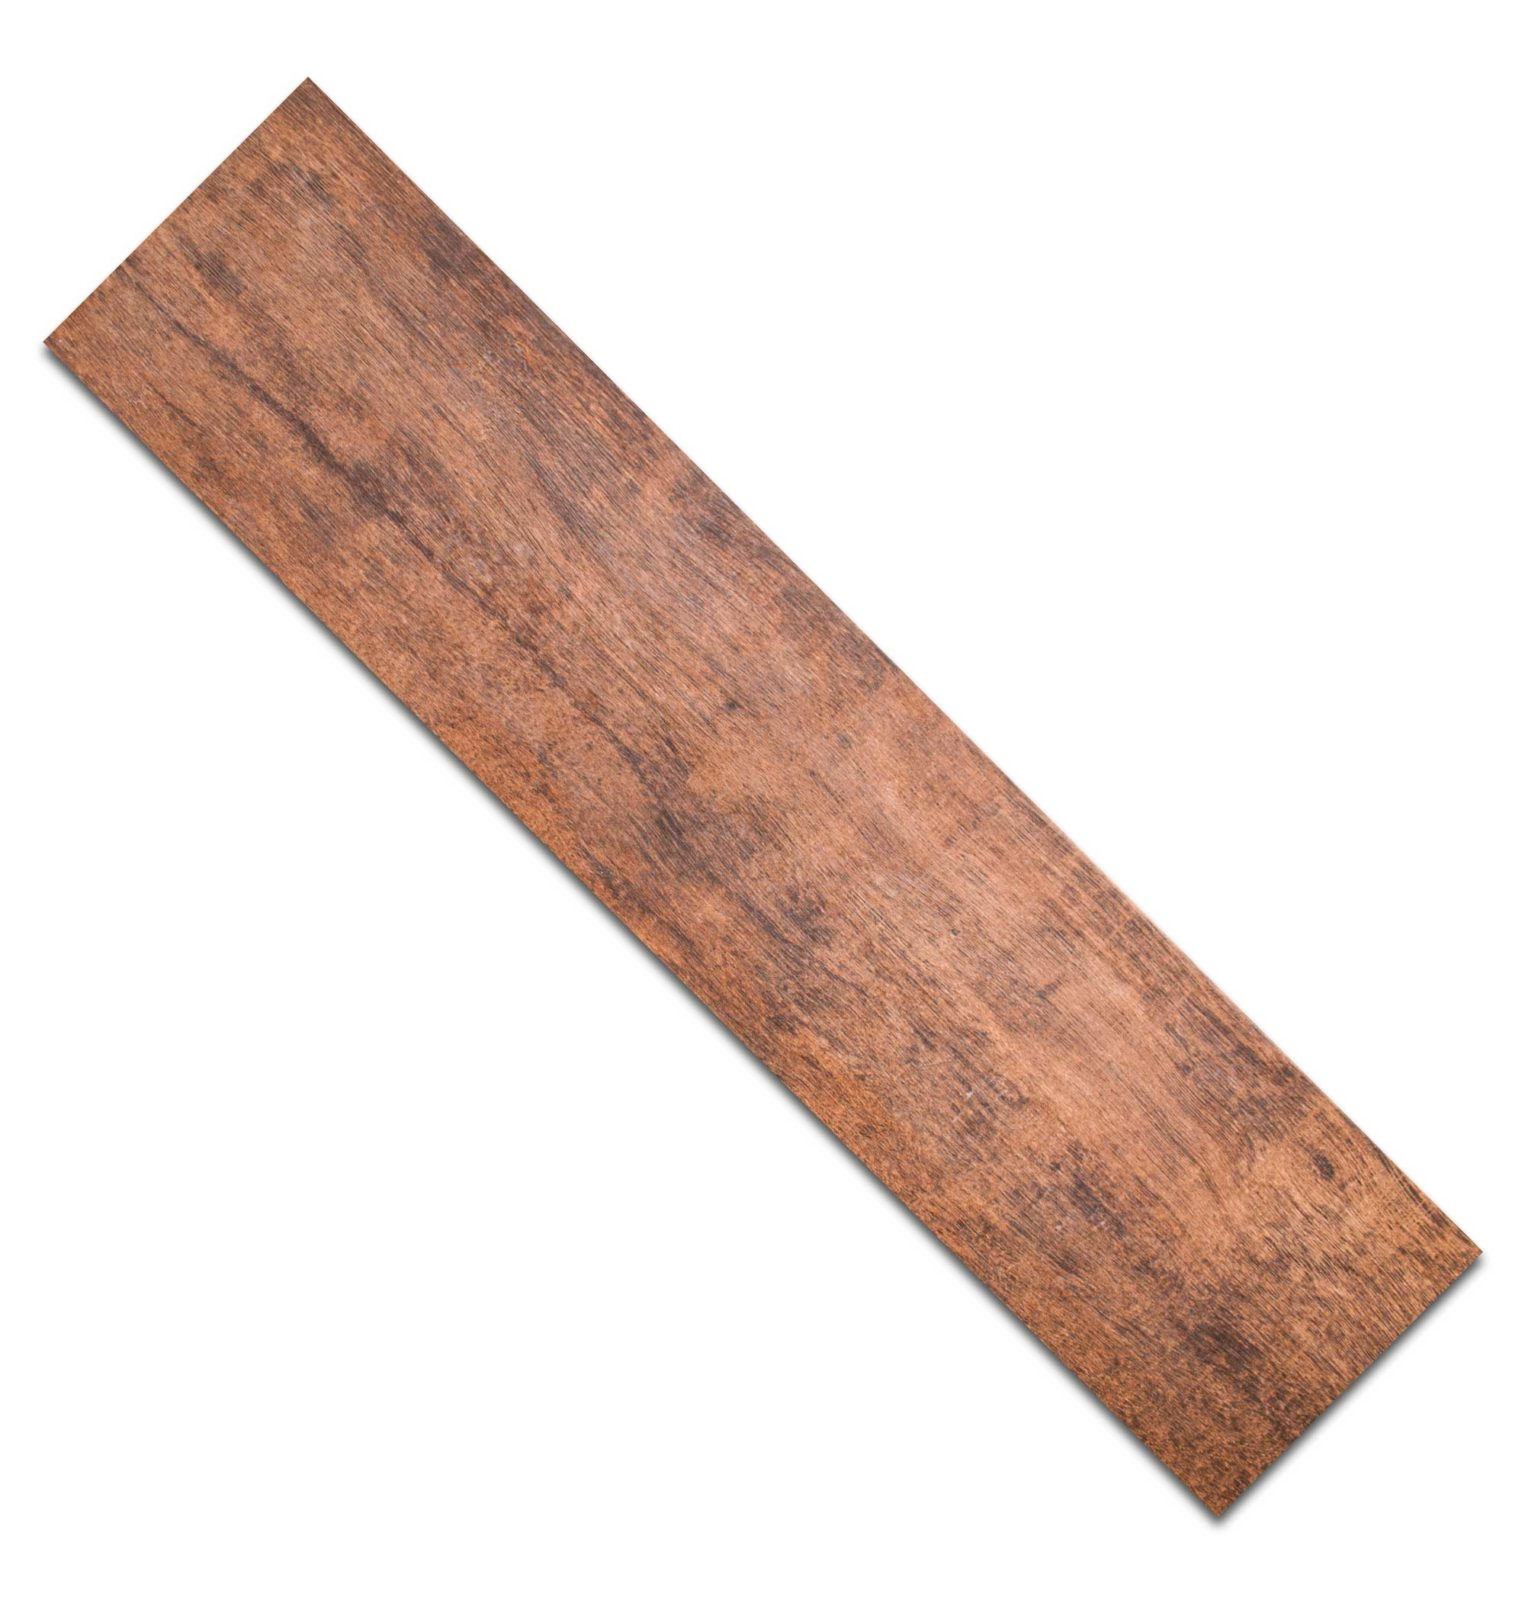 Wood Look Porcelain Plank In Stock Tile Mahogany